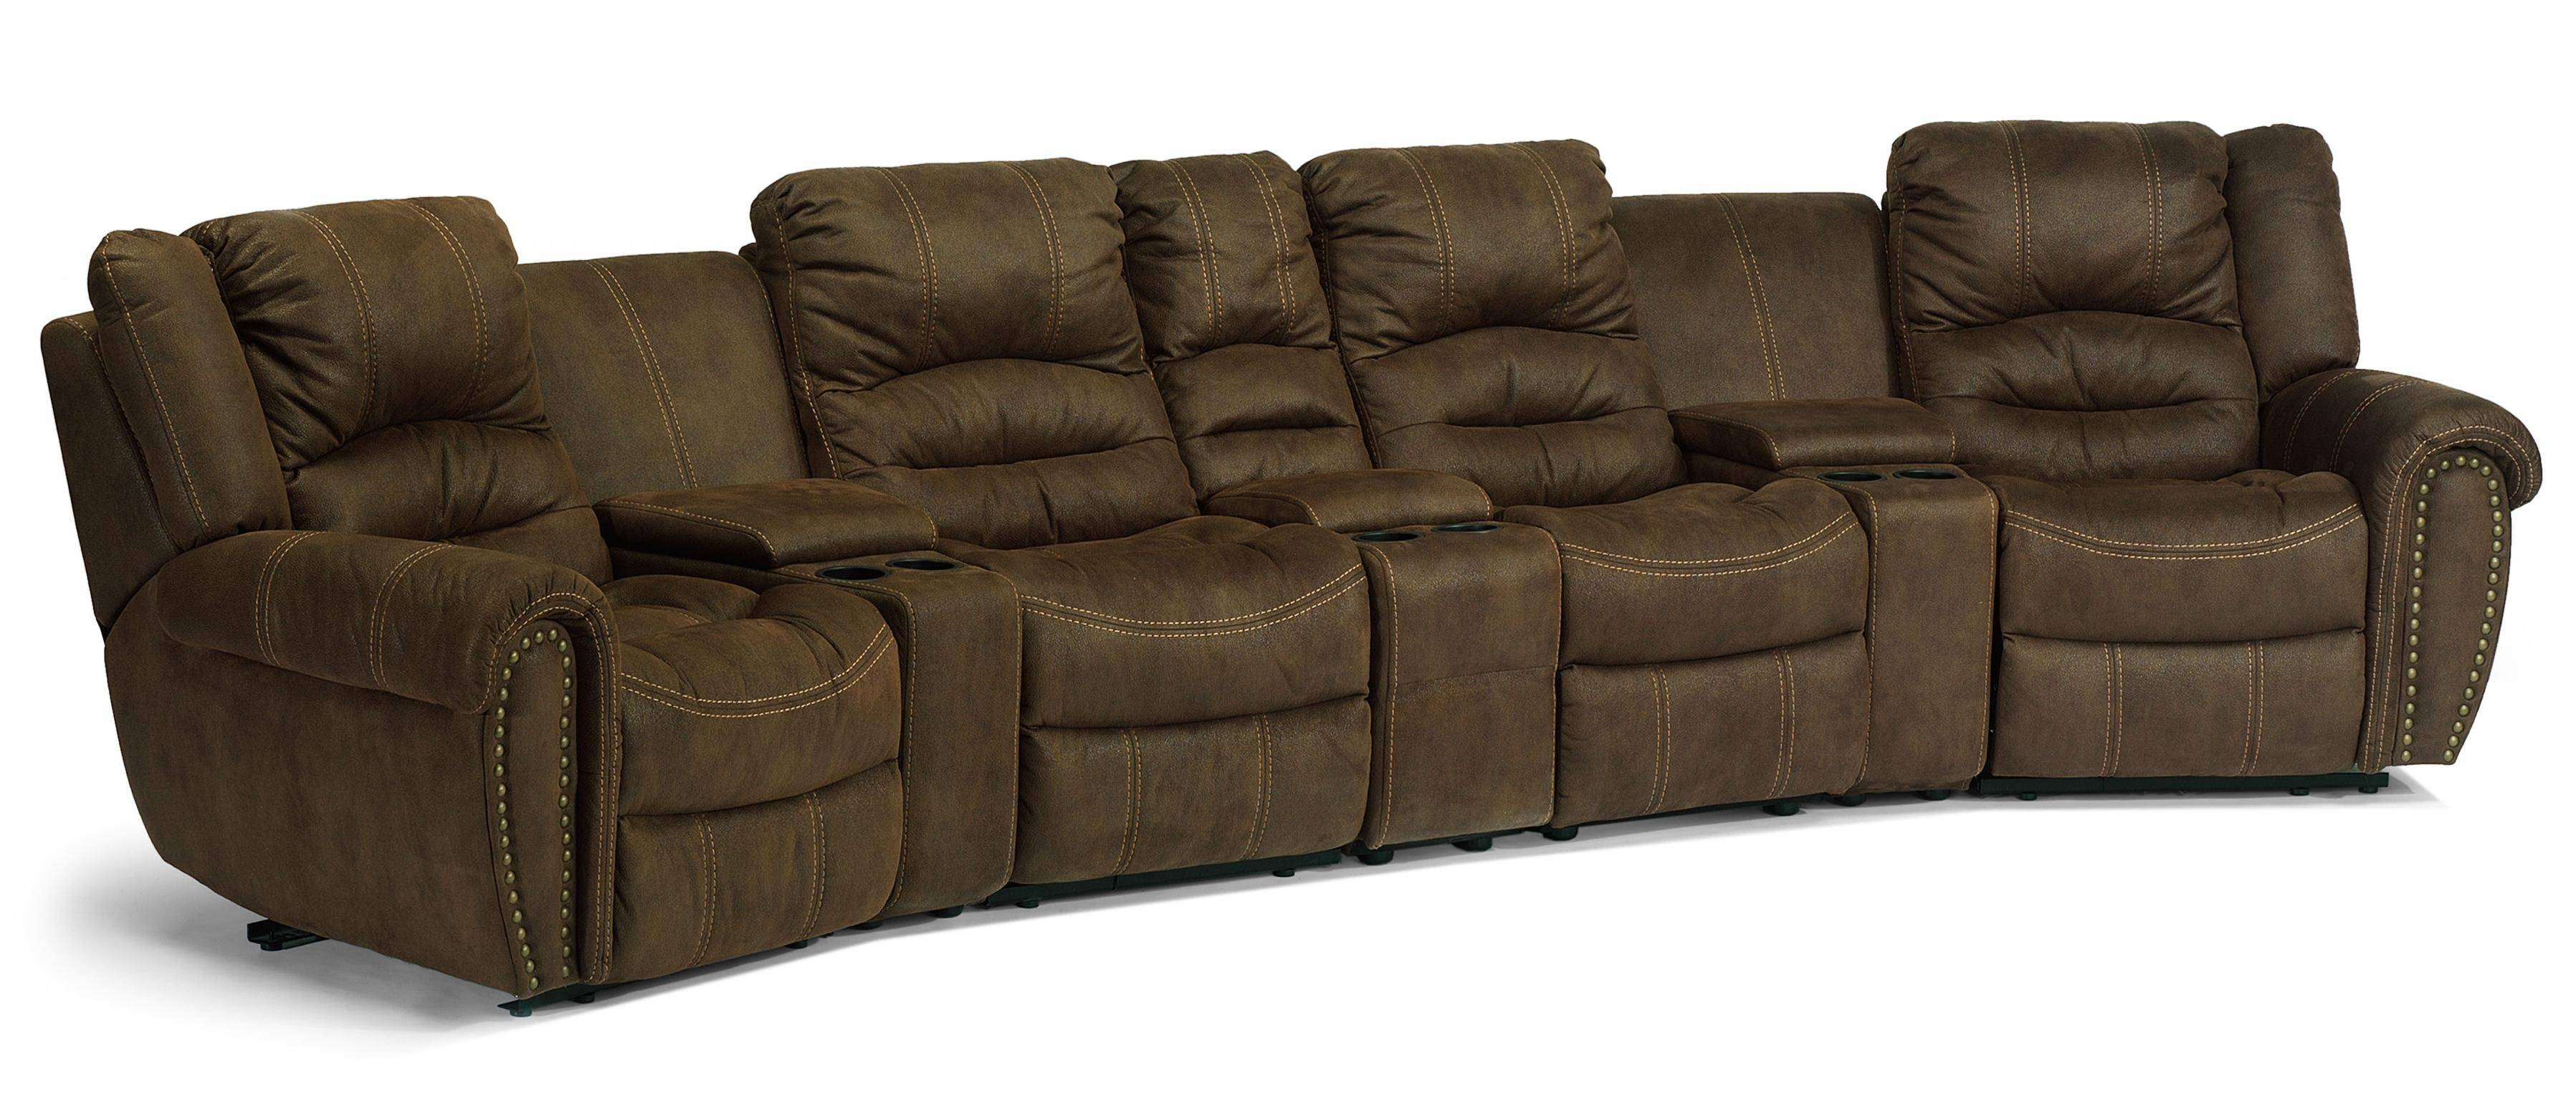 Flexsteel Latitudes - New Town Curved Reclining Sectional Sofa pertaining to Curved Sectional Sofa With Recliner (Image 6 of 30)